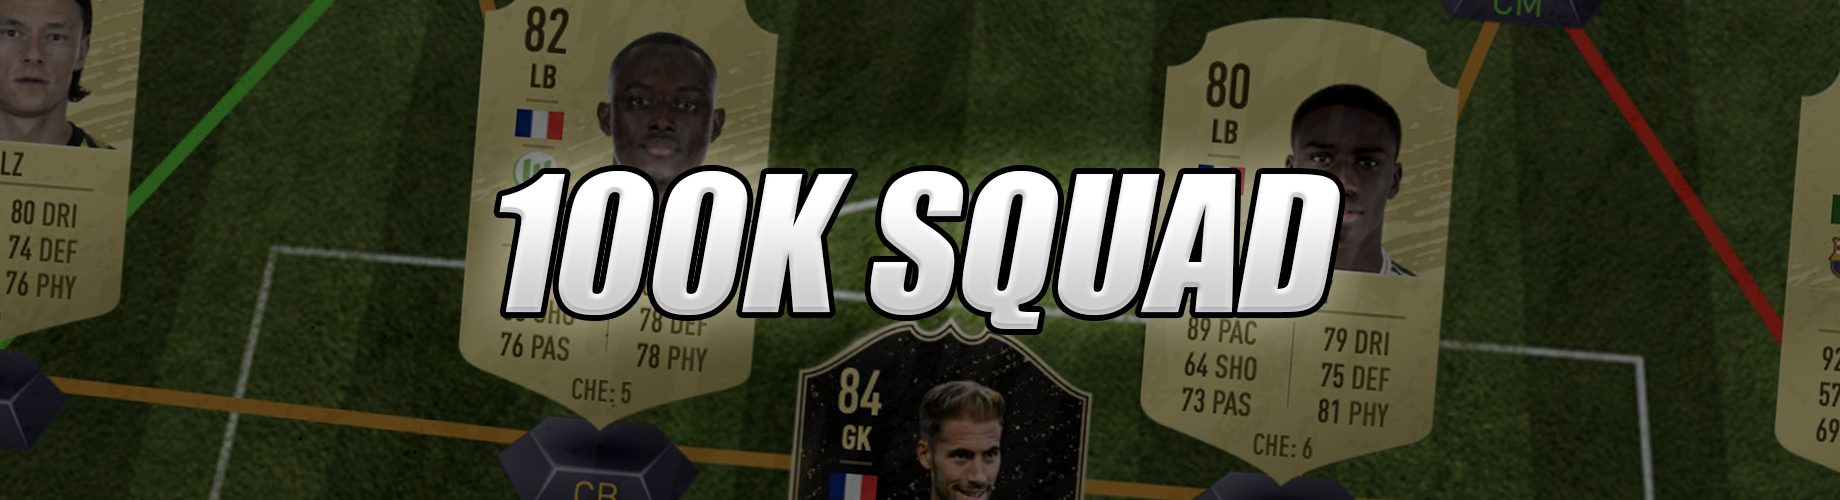 Best 100k Squad in FIFA 20